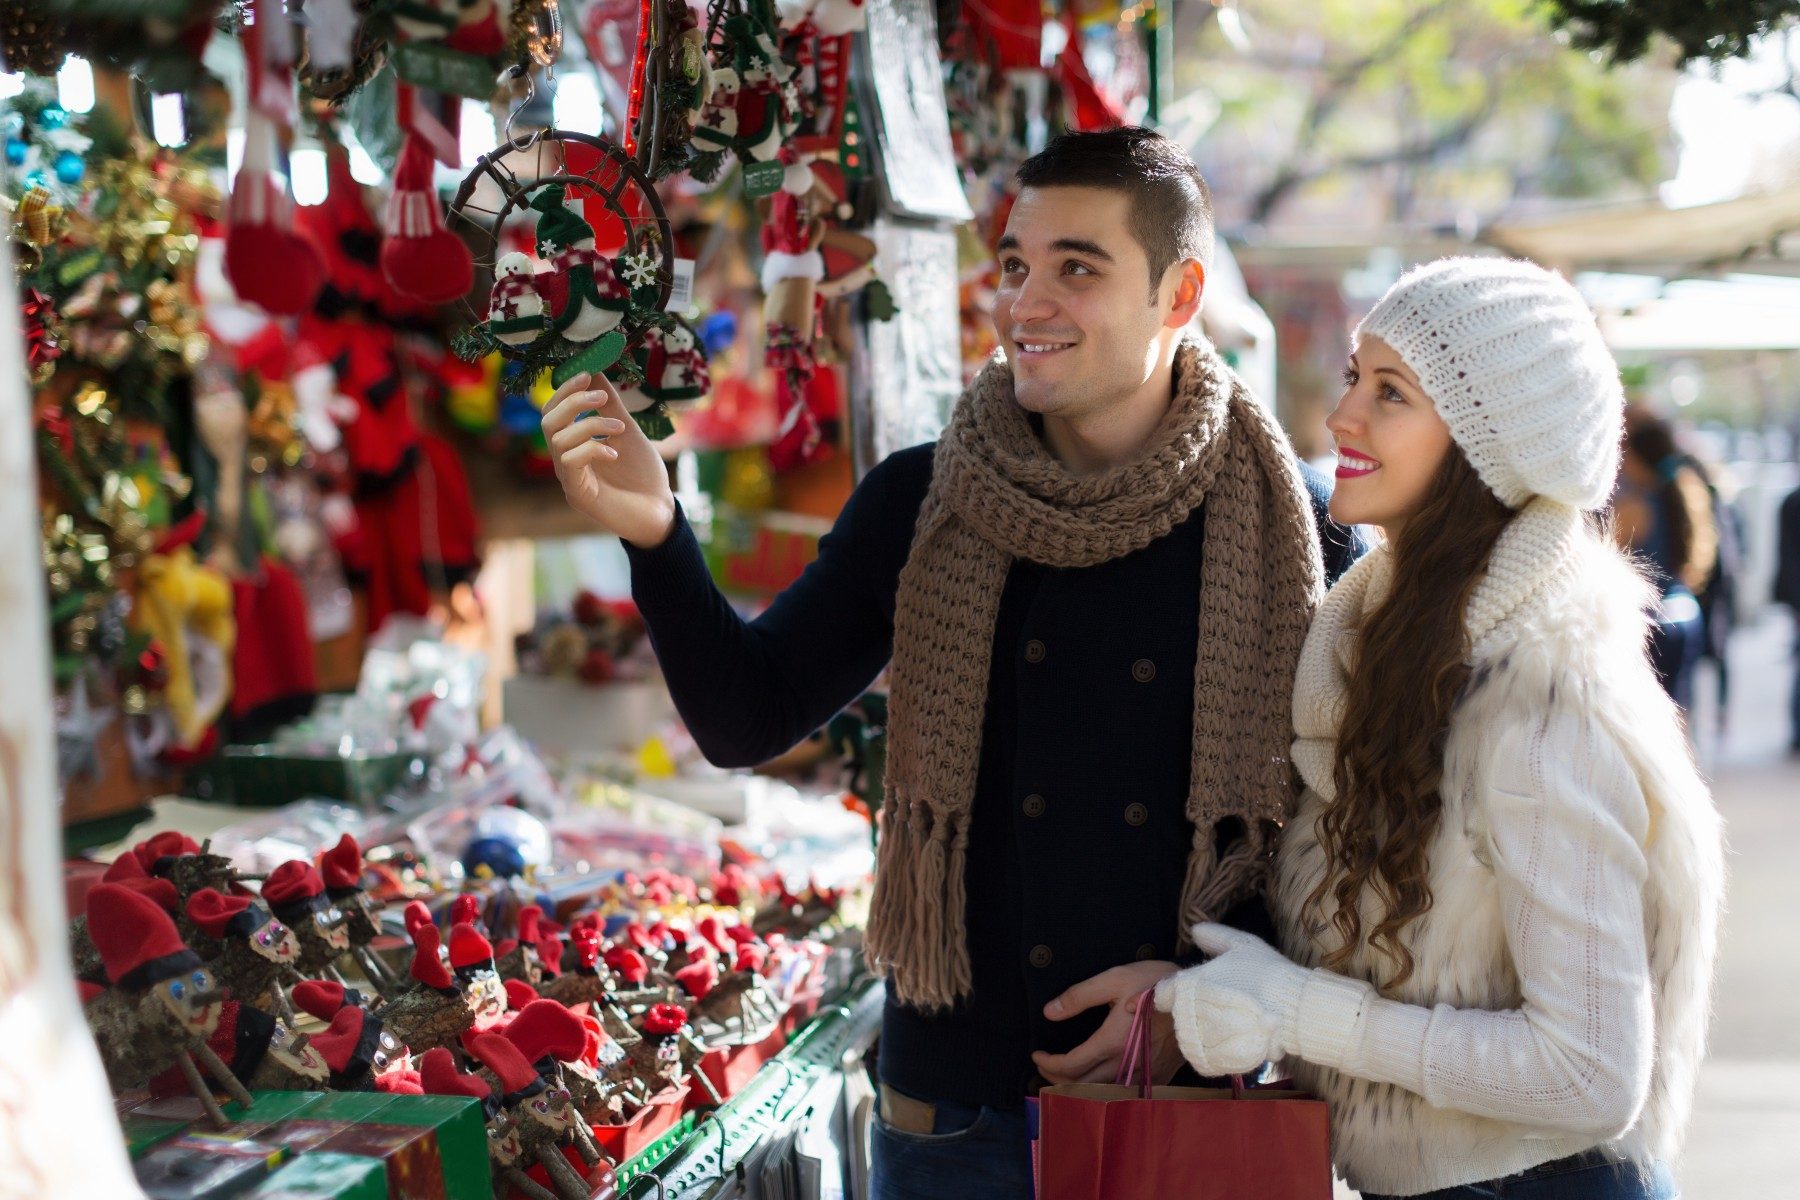 couple buying souvenirs at Spain Christmas market